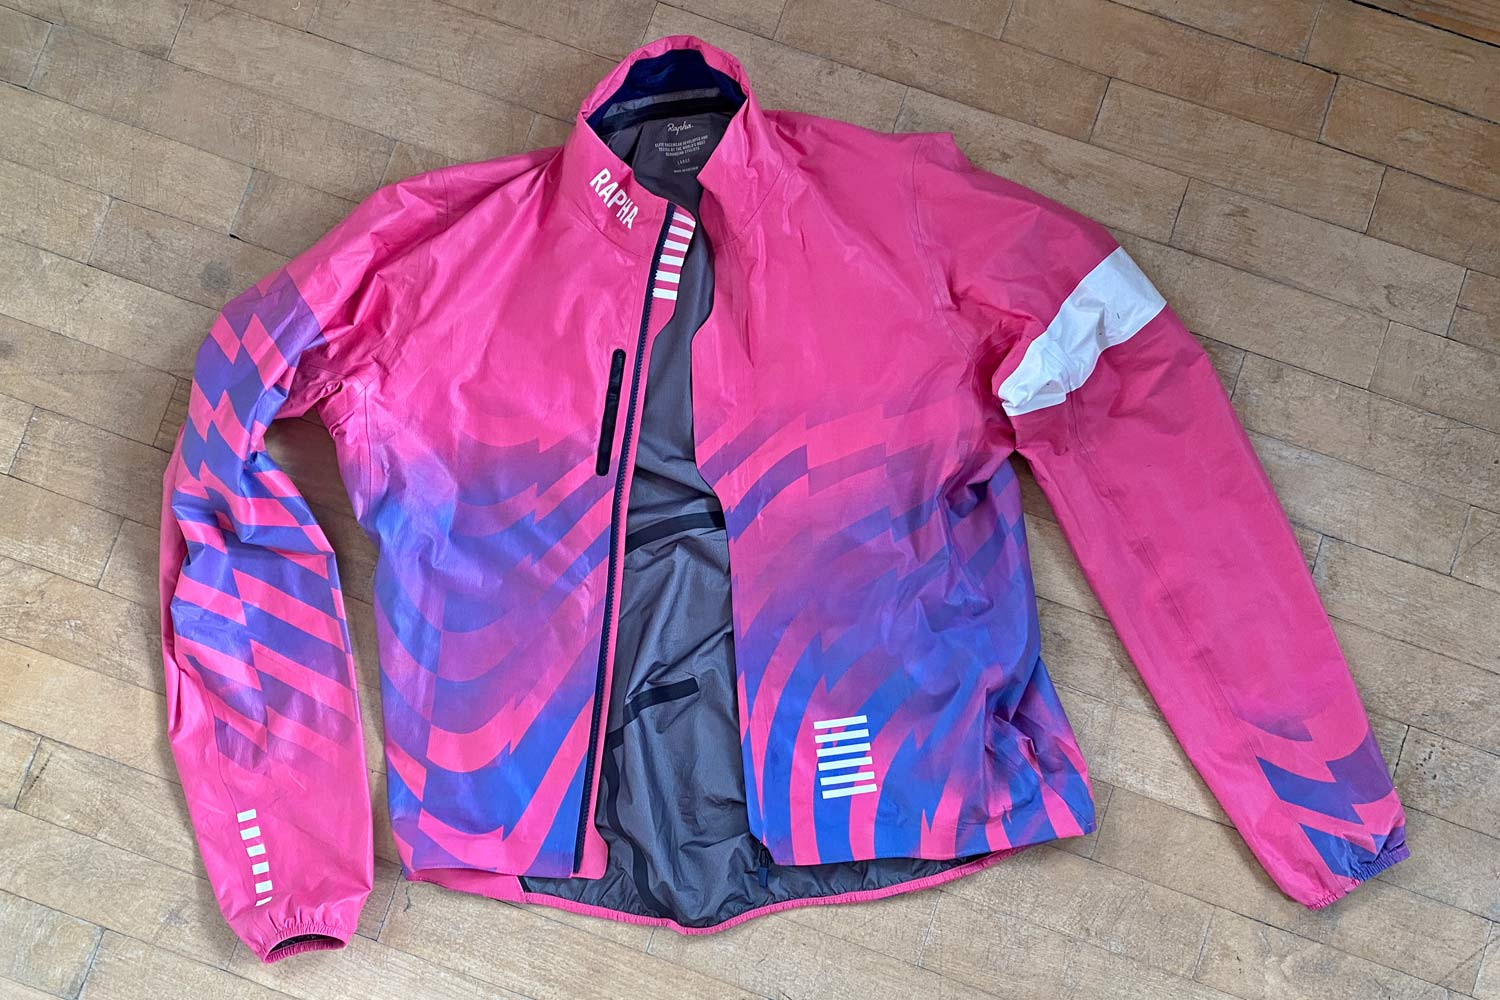 Exclusive Review: Rapha Pro Team Lightweight Gore-Tex Jacket printed in pink Technicolor, extra full color Shakedry visibility